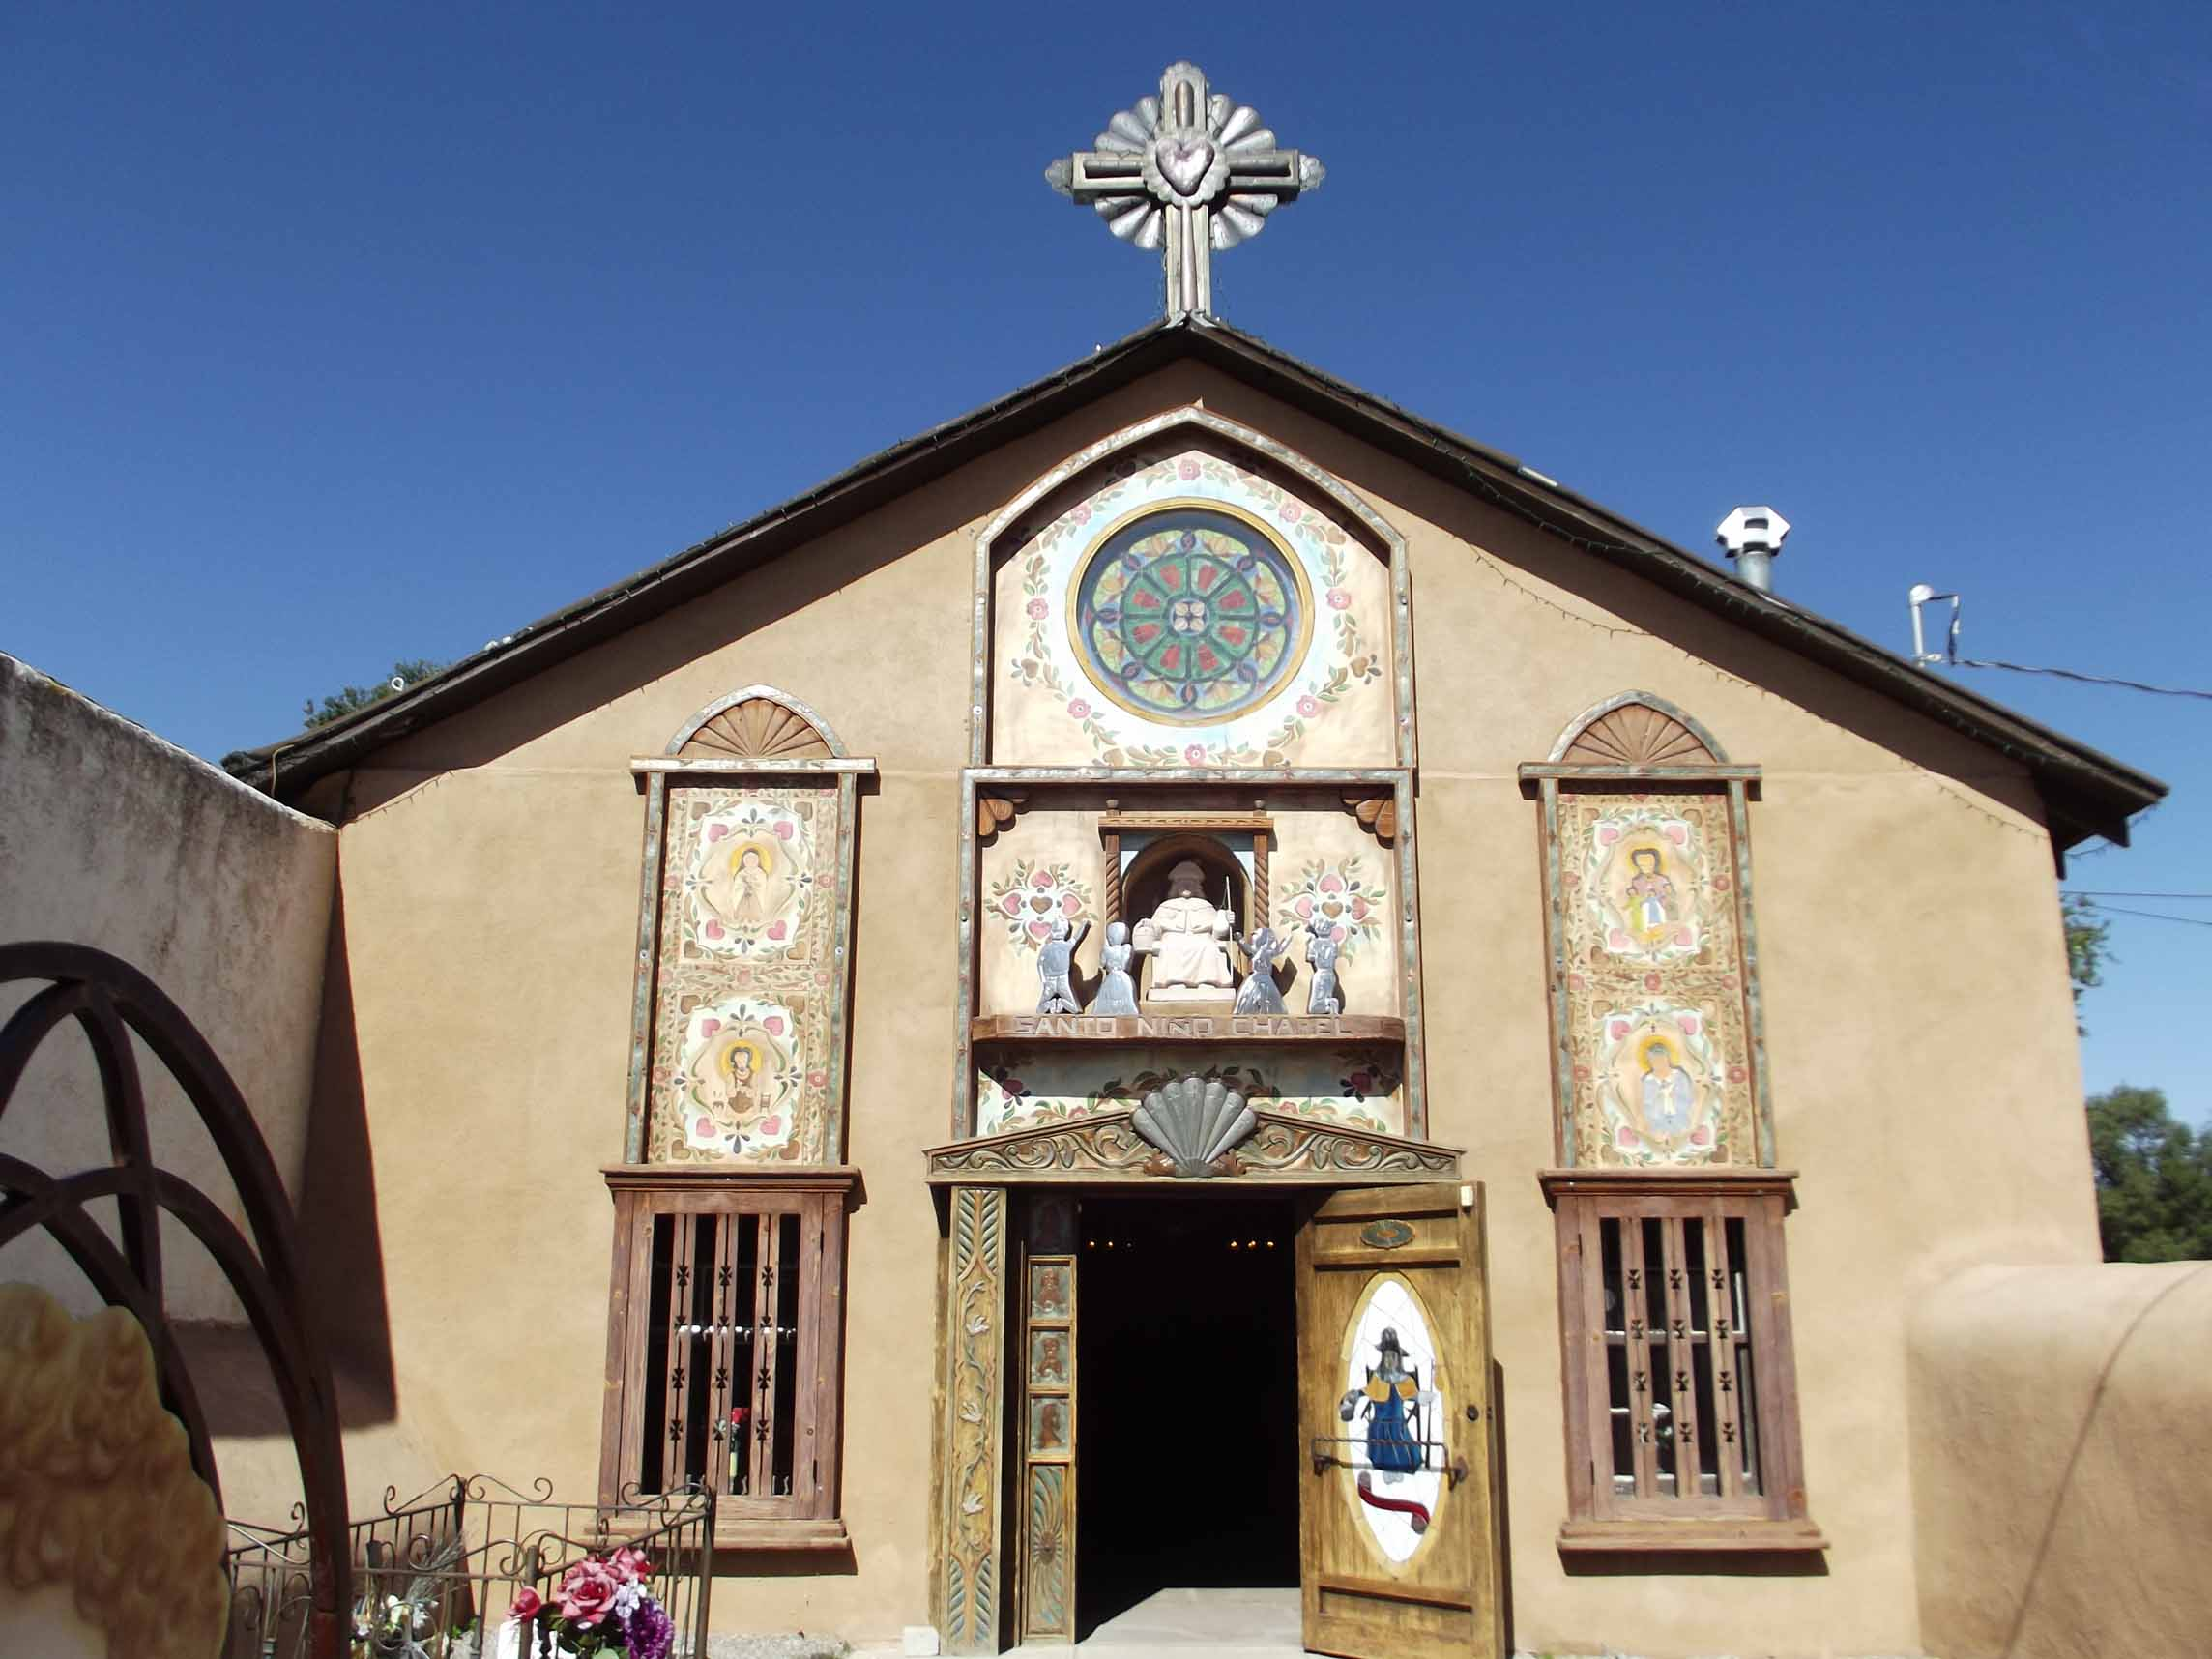 Adobe church with decorative tiles on the front